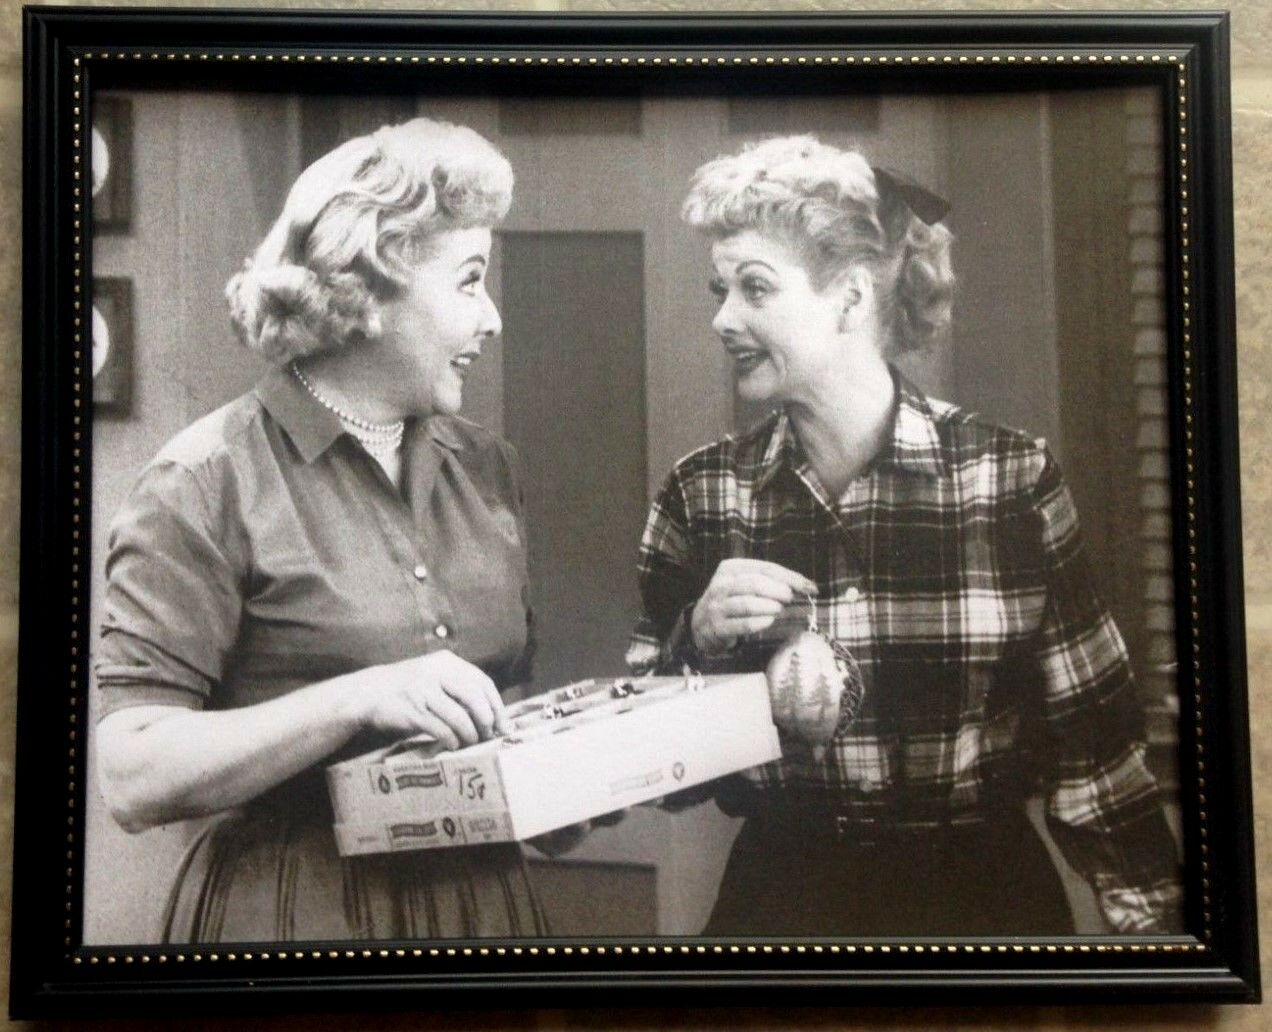 old rare i love lucy christmas frame tv movie room picture framed 1 of 1free shipping - I Love Lucy Christmas